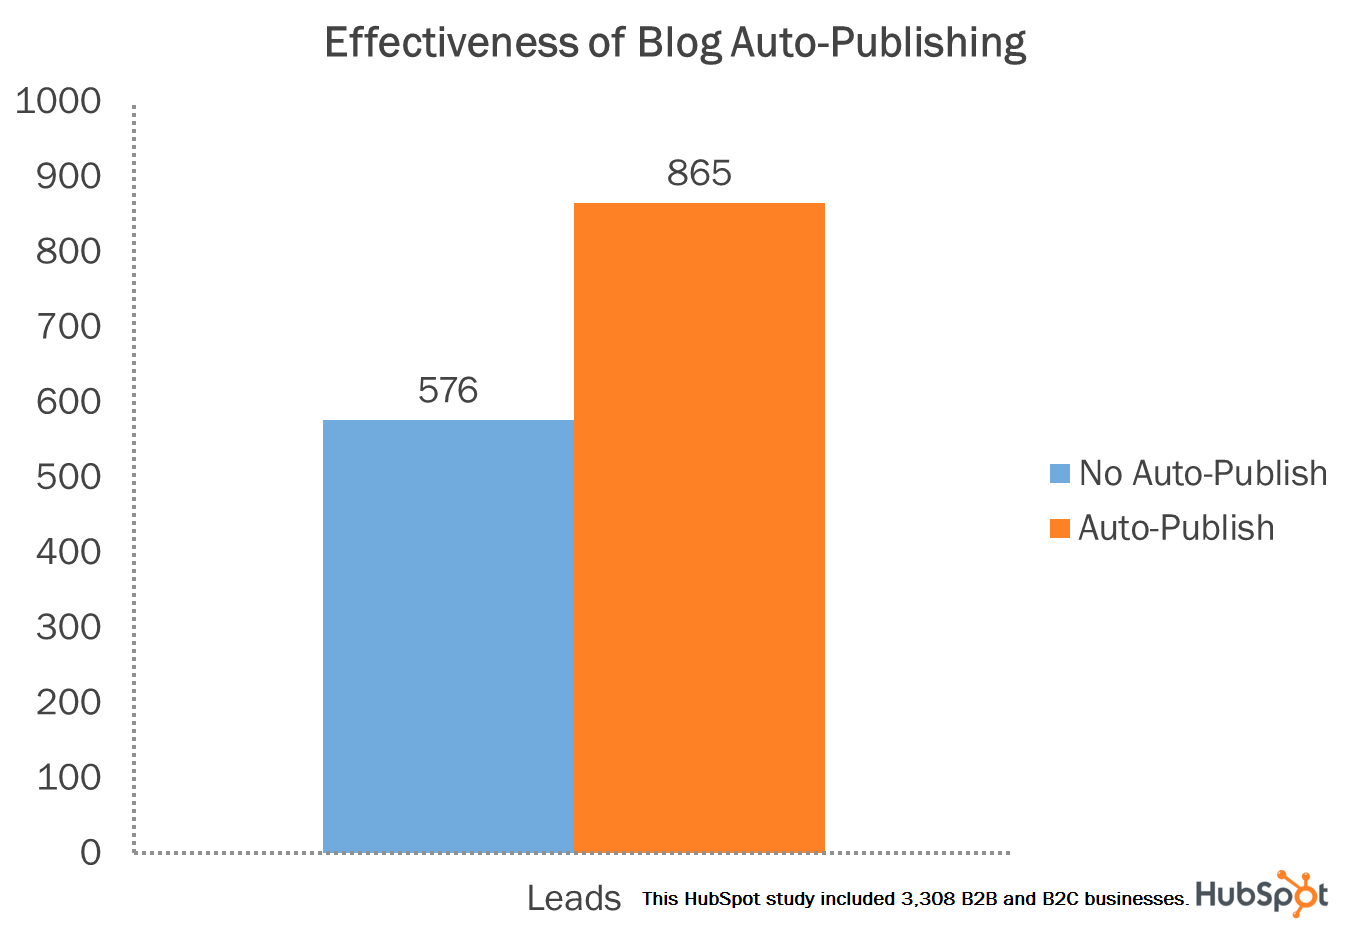 blog auto publish lead generation